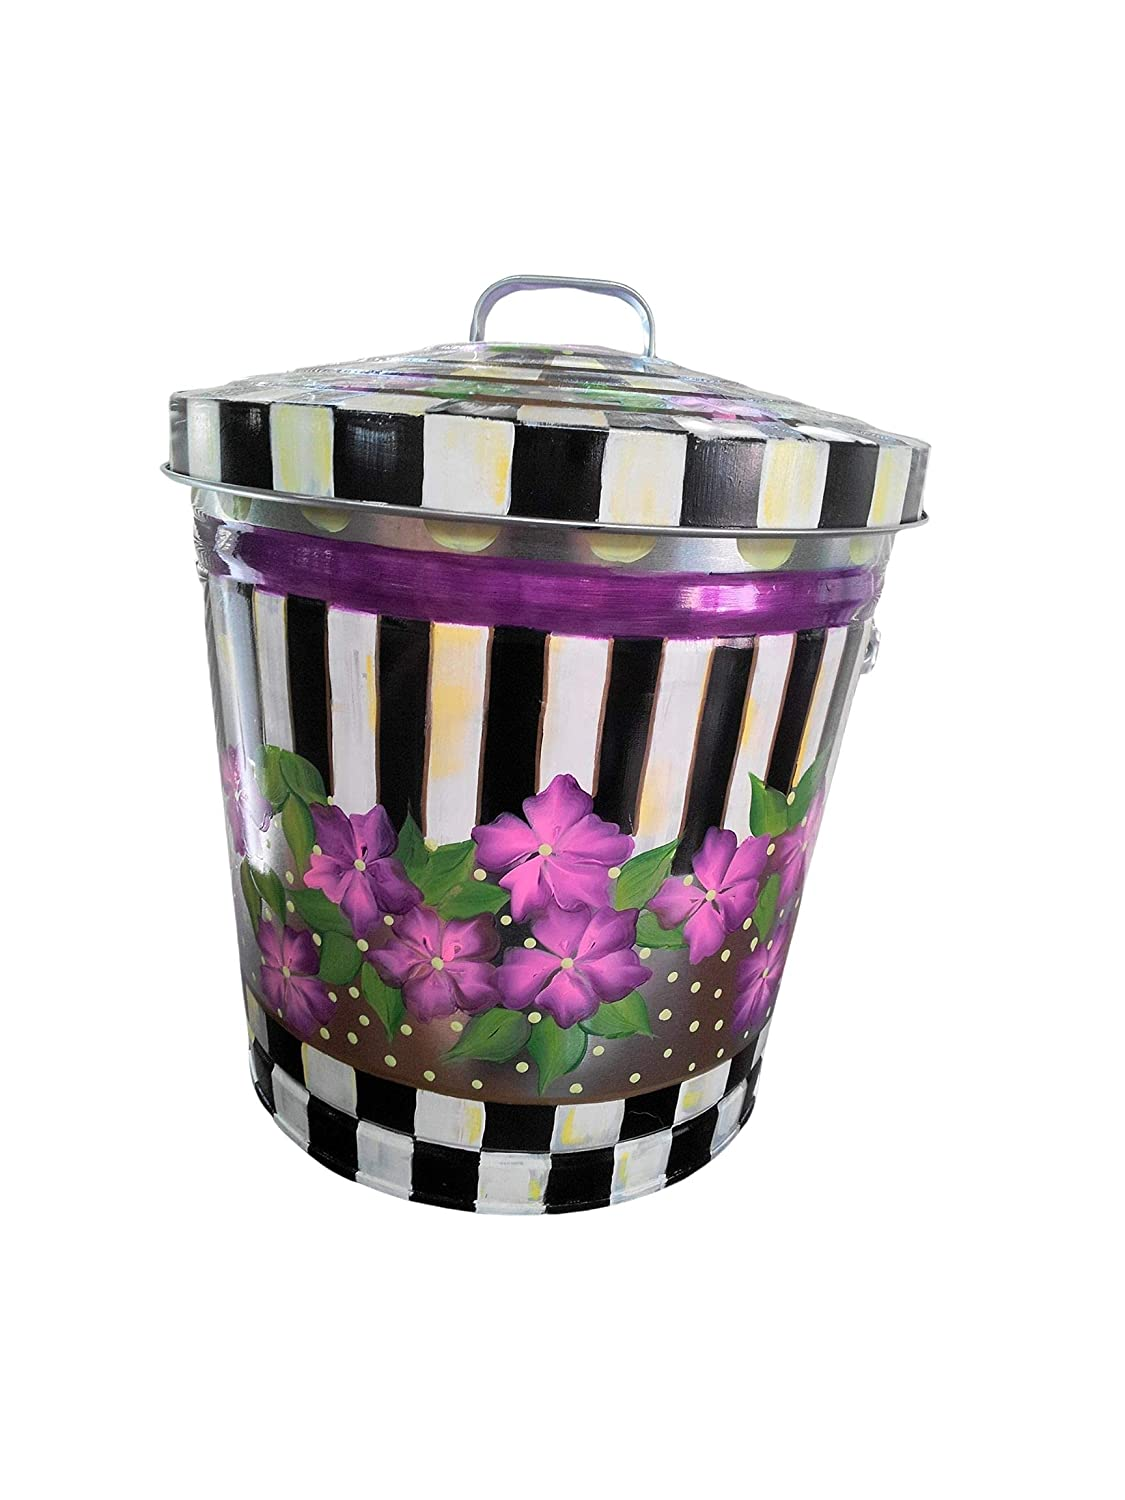 10 Gallon Hand Painted Trash Sales for sale Can Garbage Popular overseas Decorative